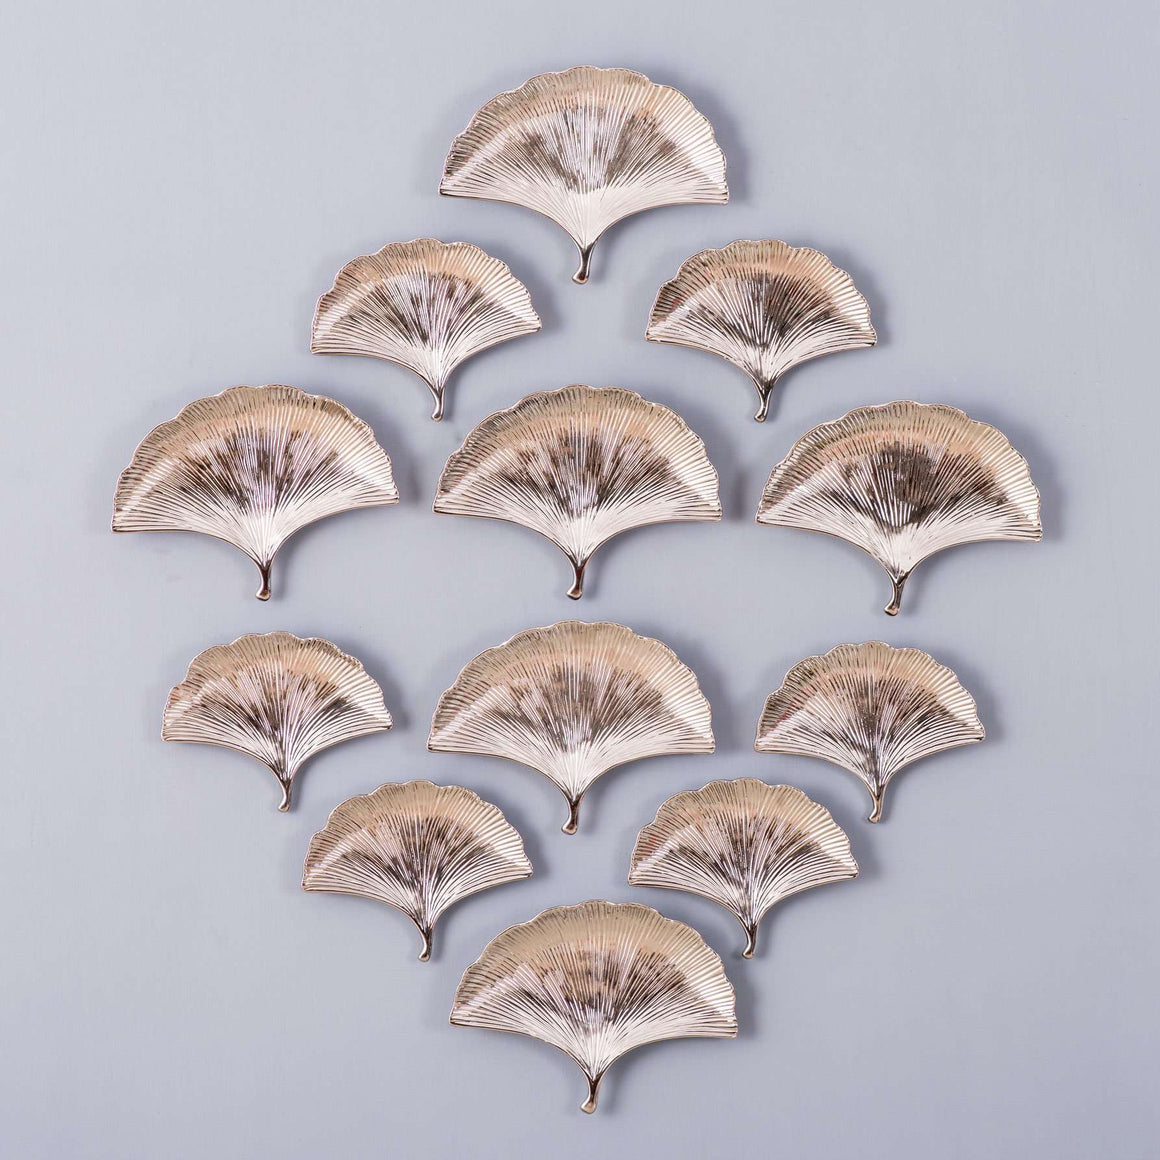 Silver Ginkgo Leaves Wall Collage - Set of 12